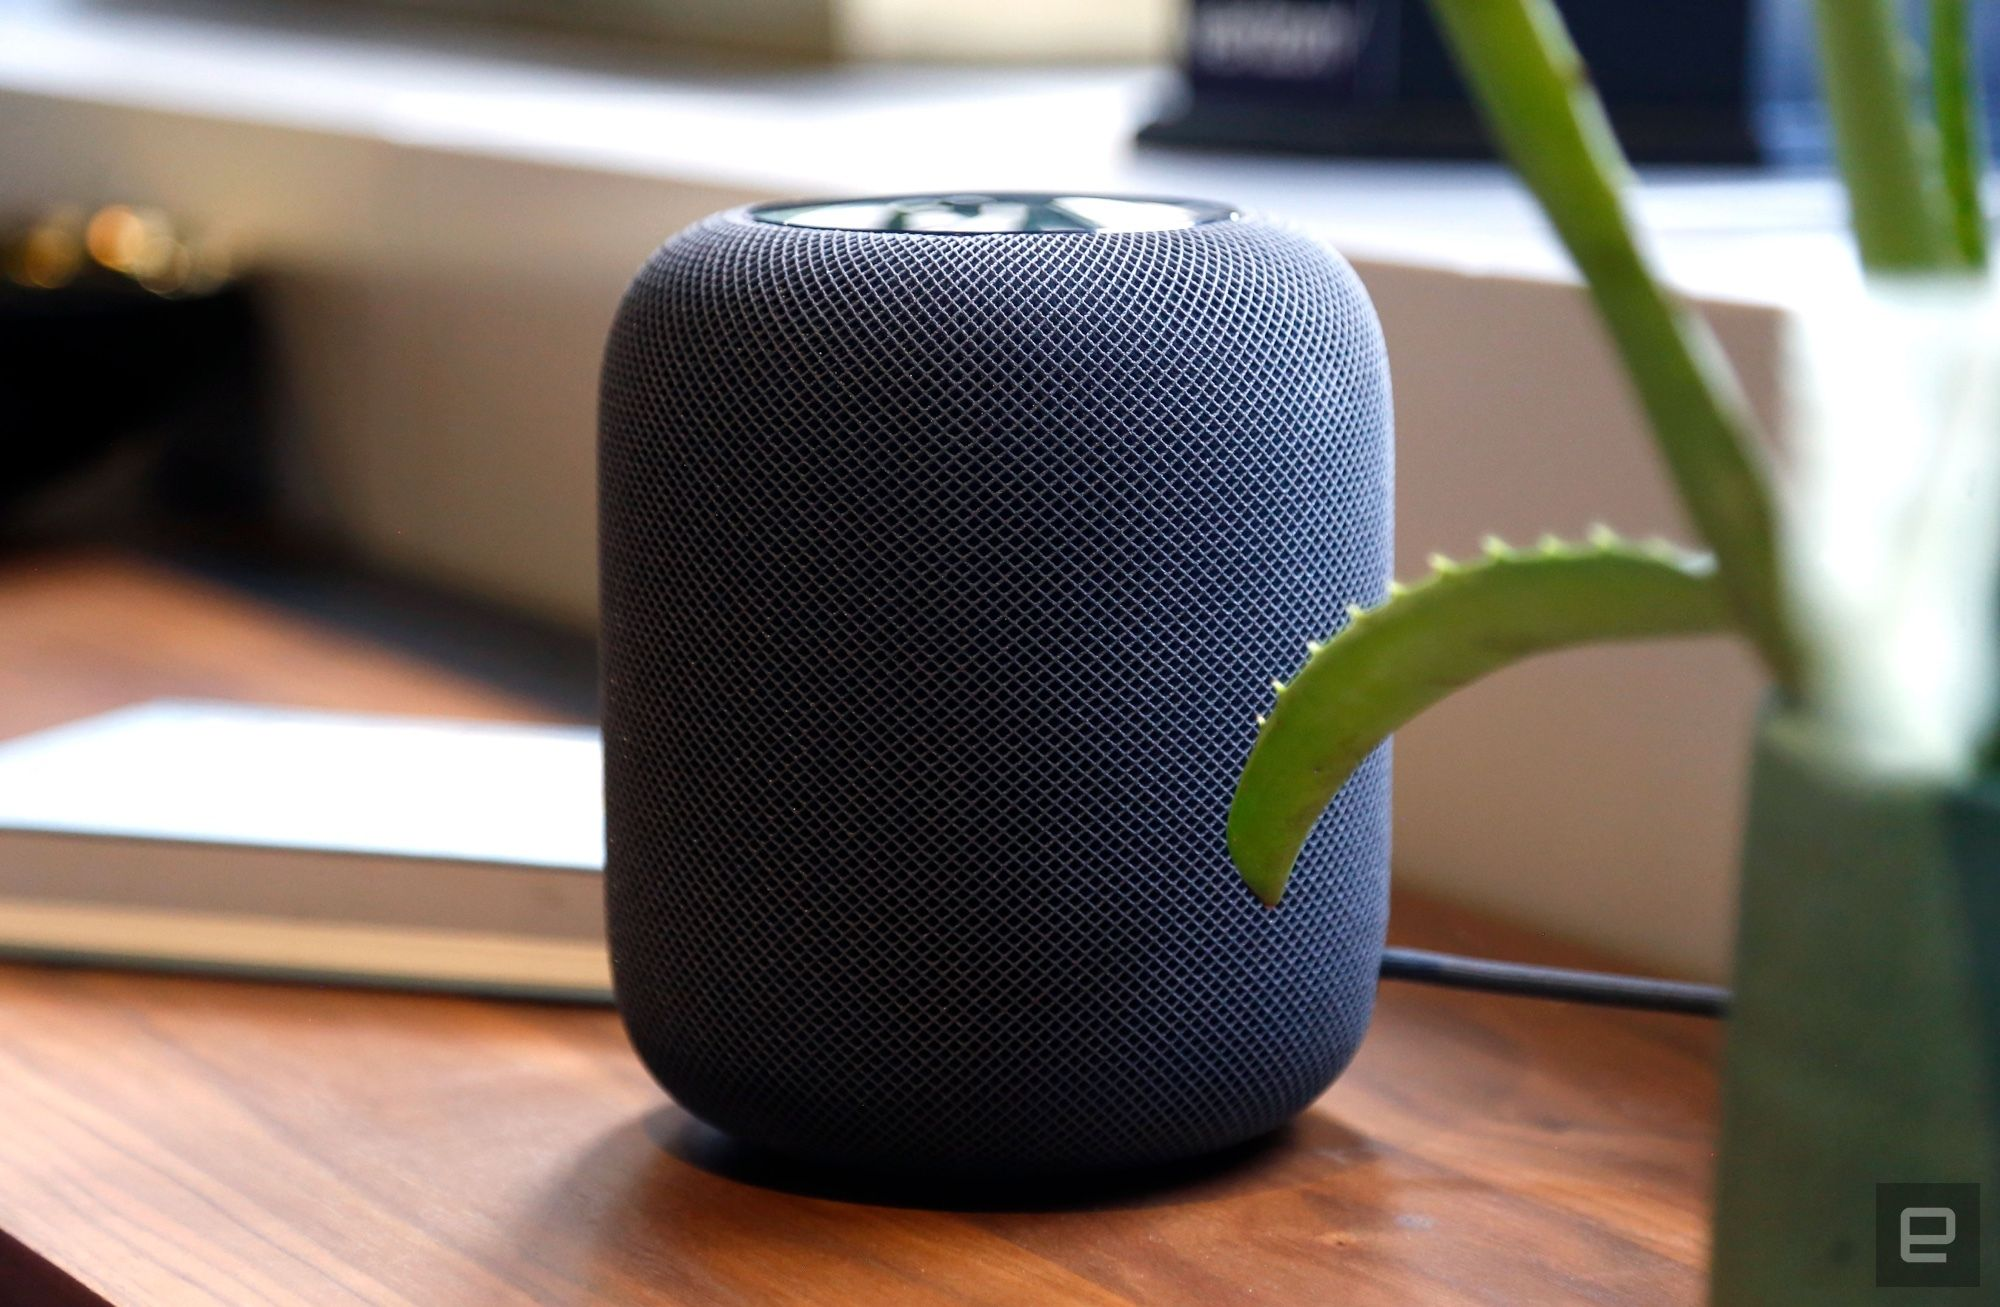 Pandora is the first third-party music app to work on Apple's HomePod